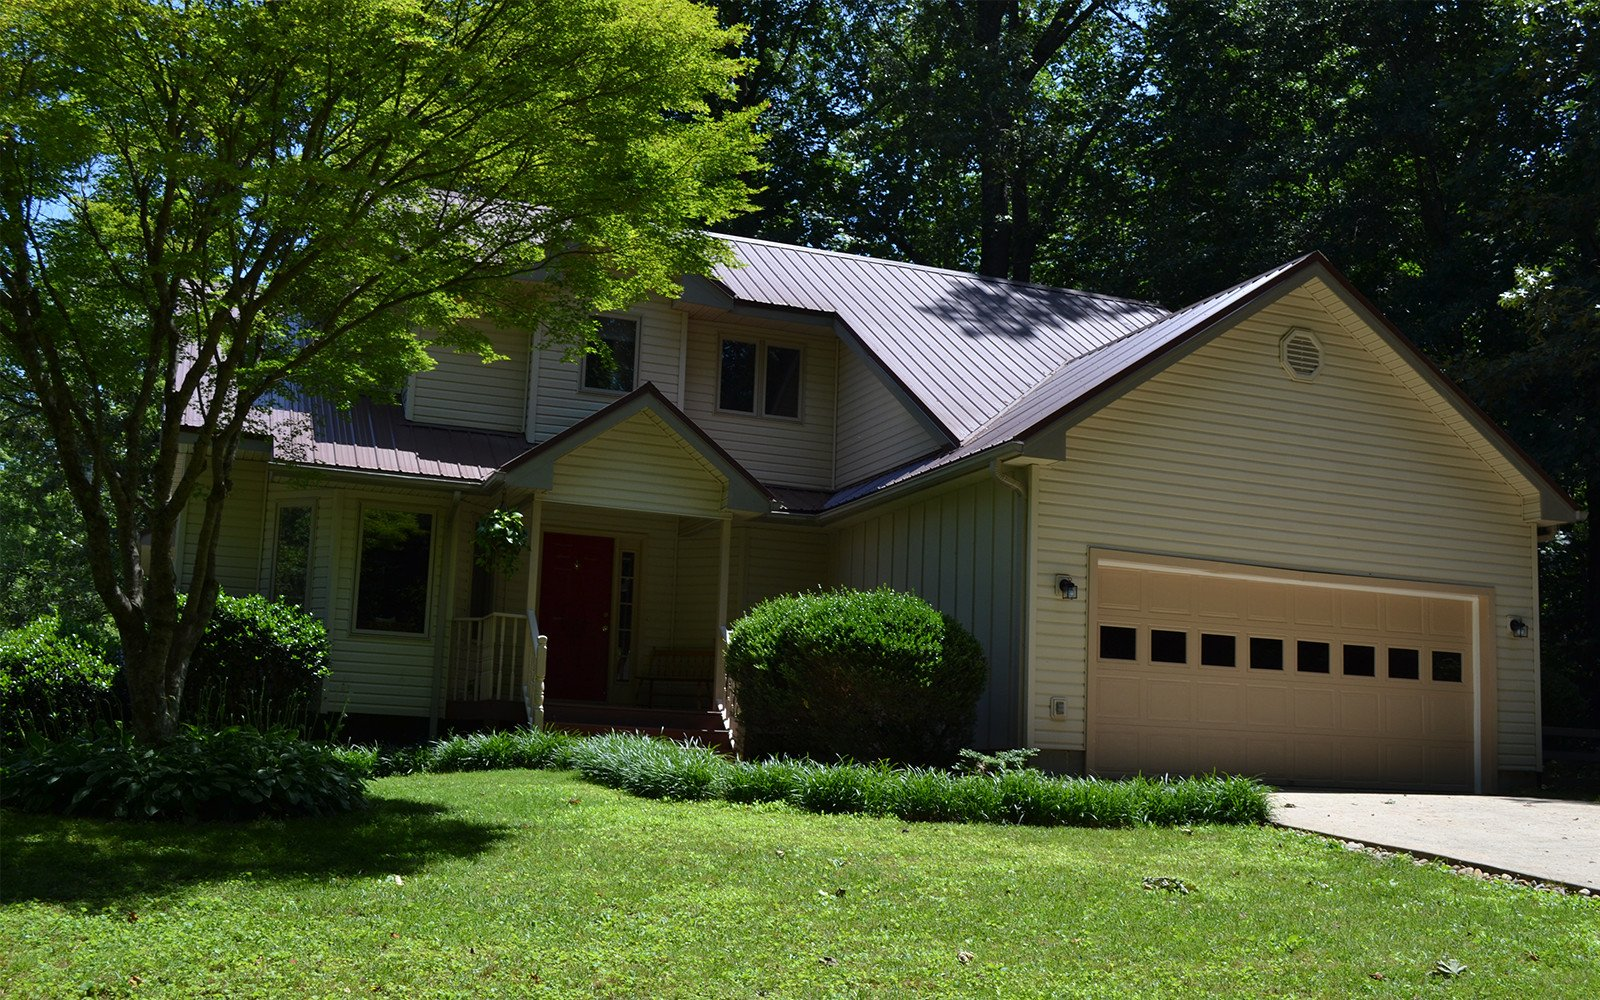 Hilt Street house with double garage in Brevard NC